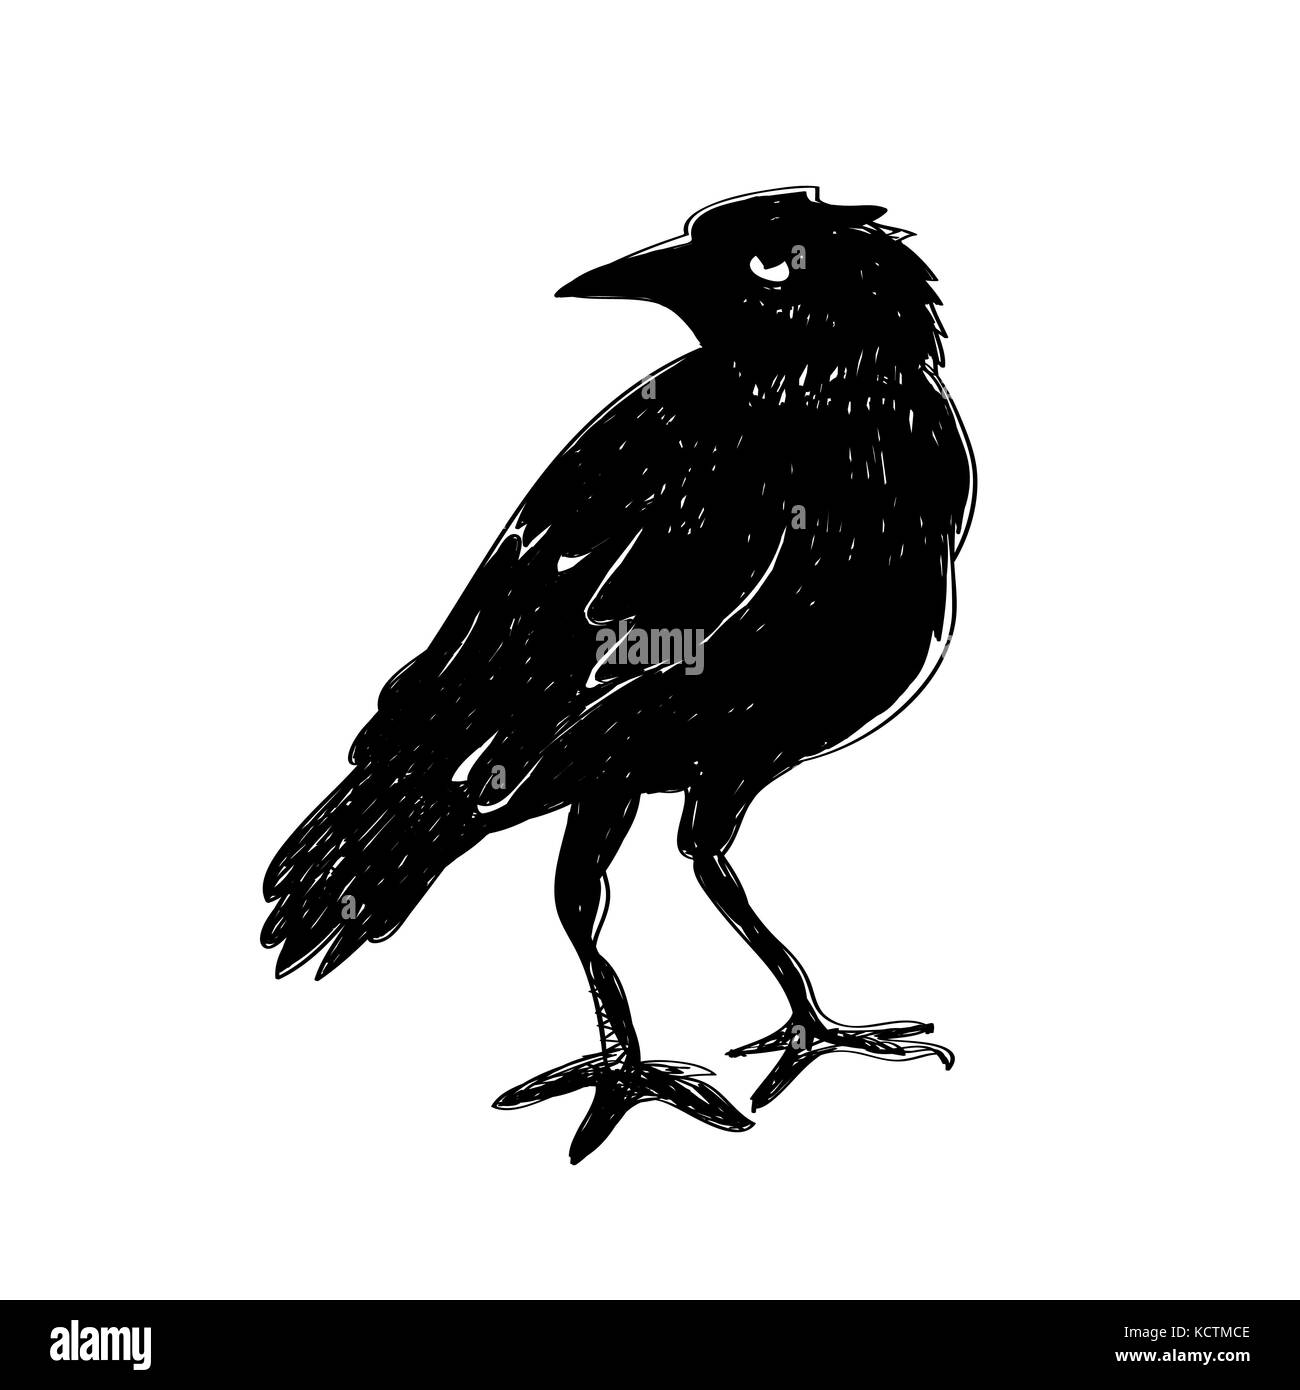 Black raven isolated on white background. Hand drawn crow. - Stock Image